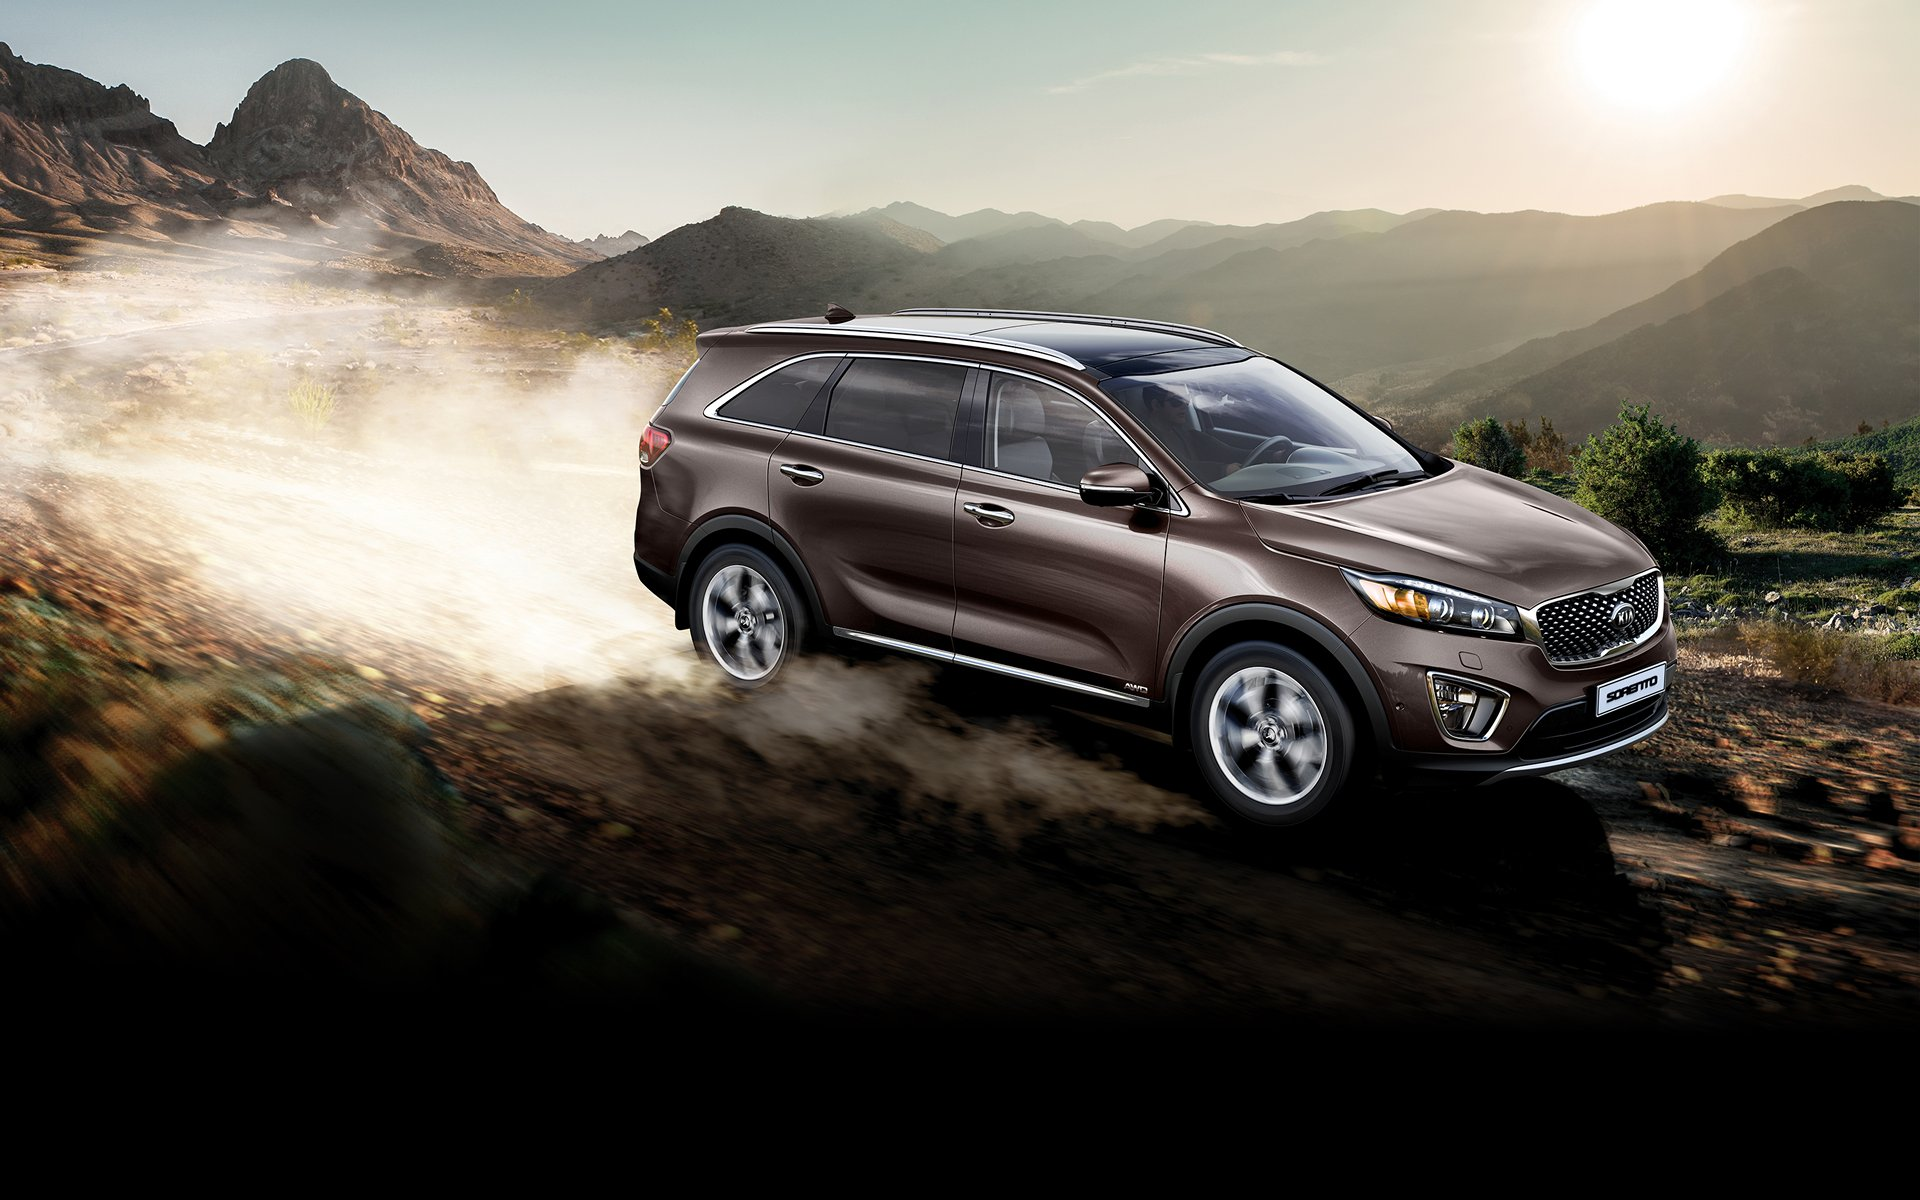 2016 North American Truck of the Year Nominee Kia Sorento